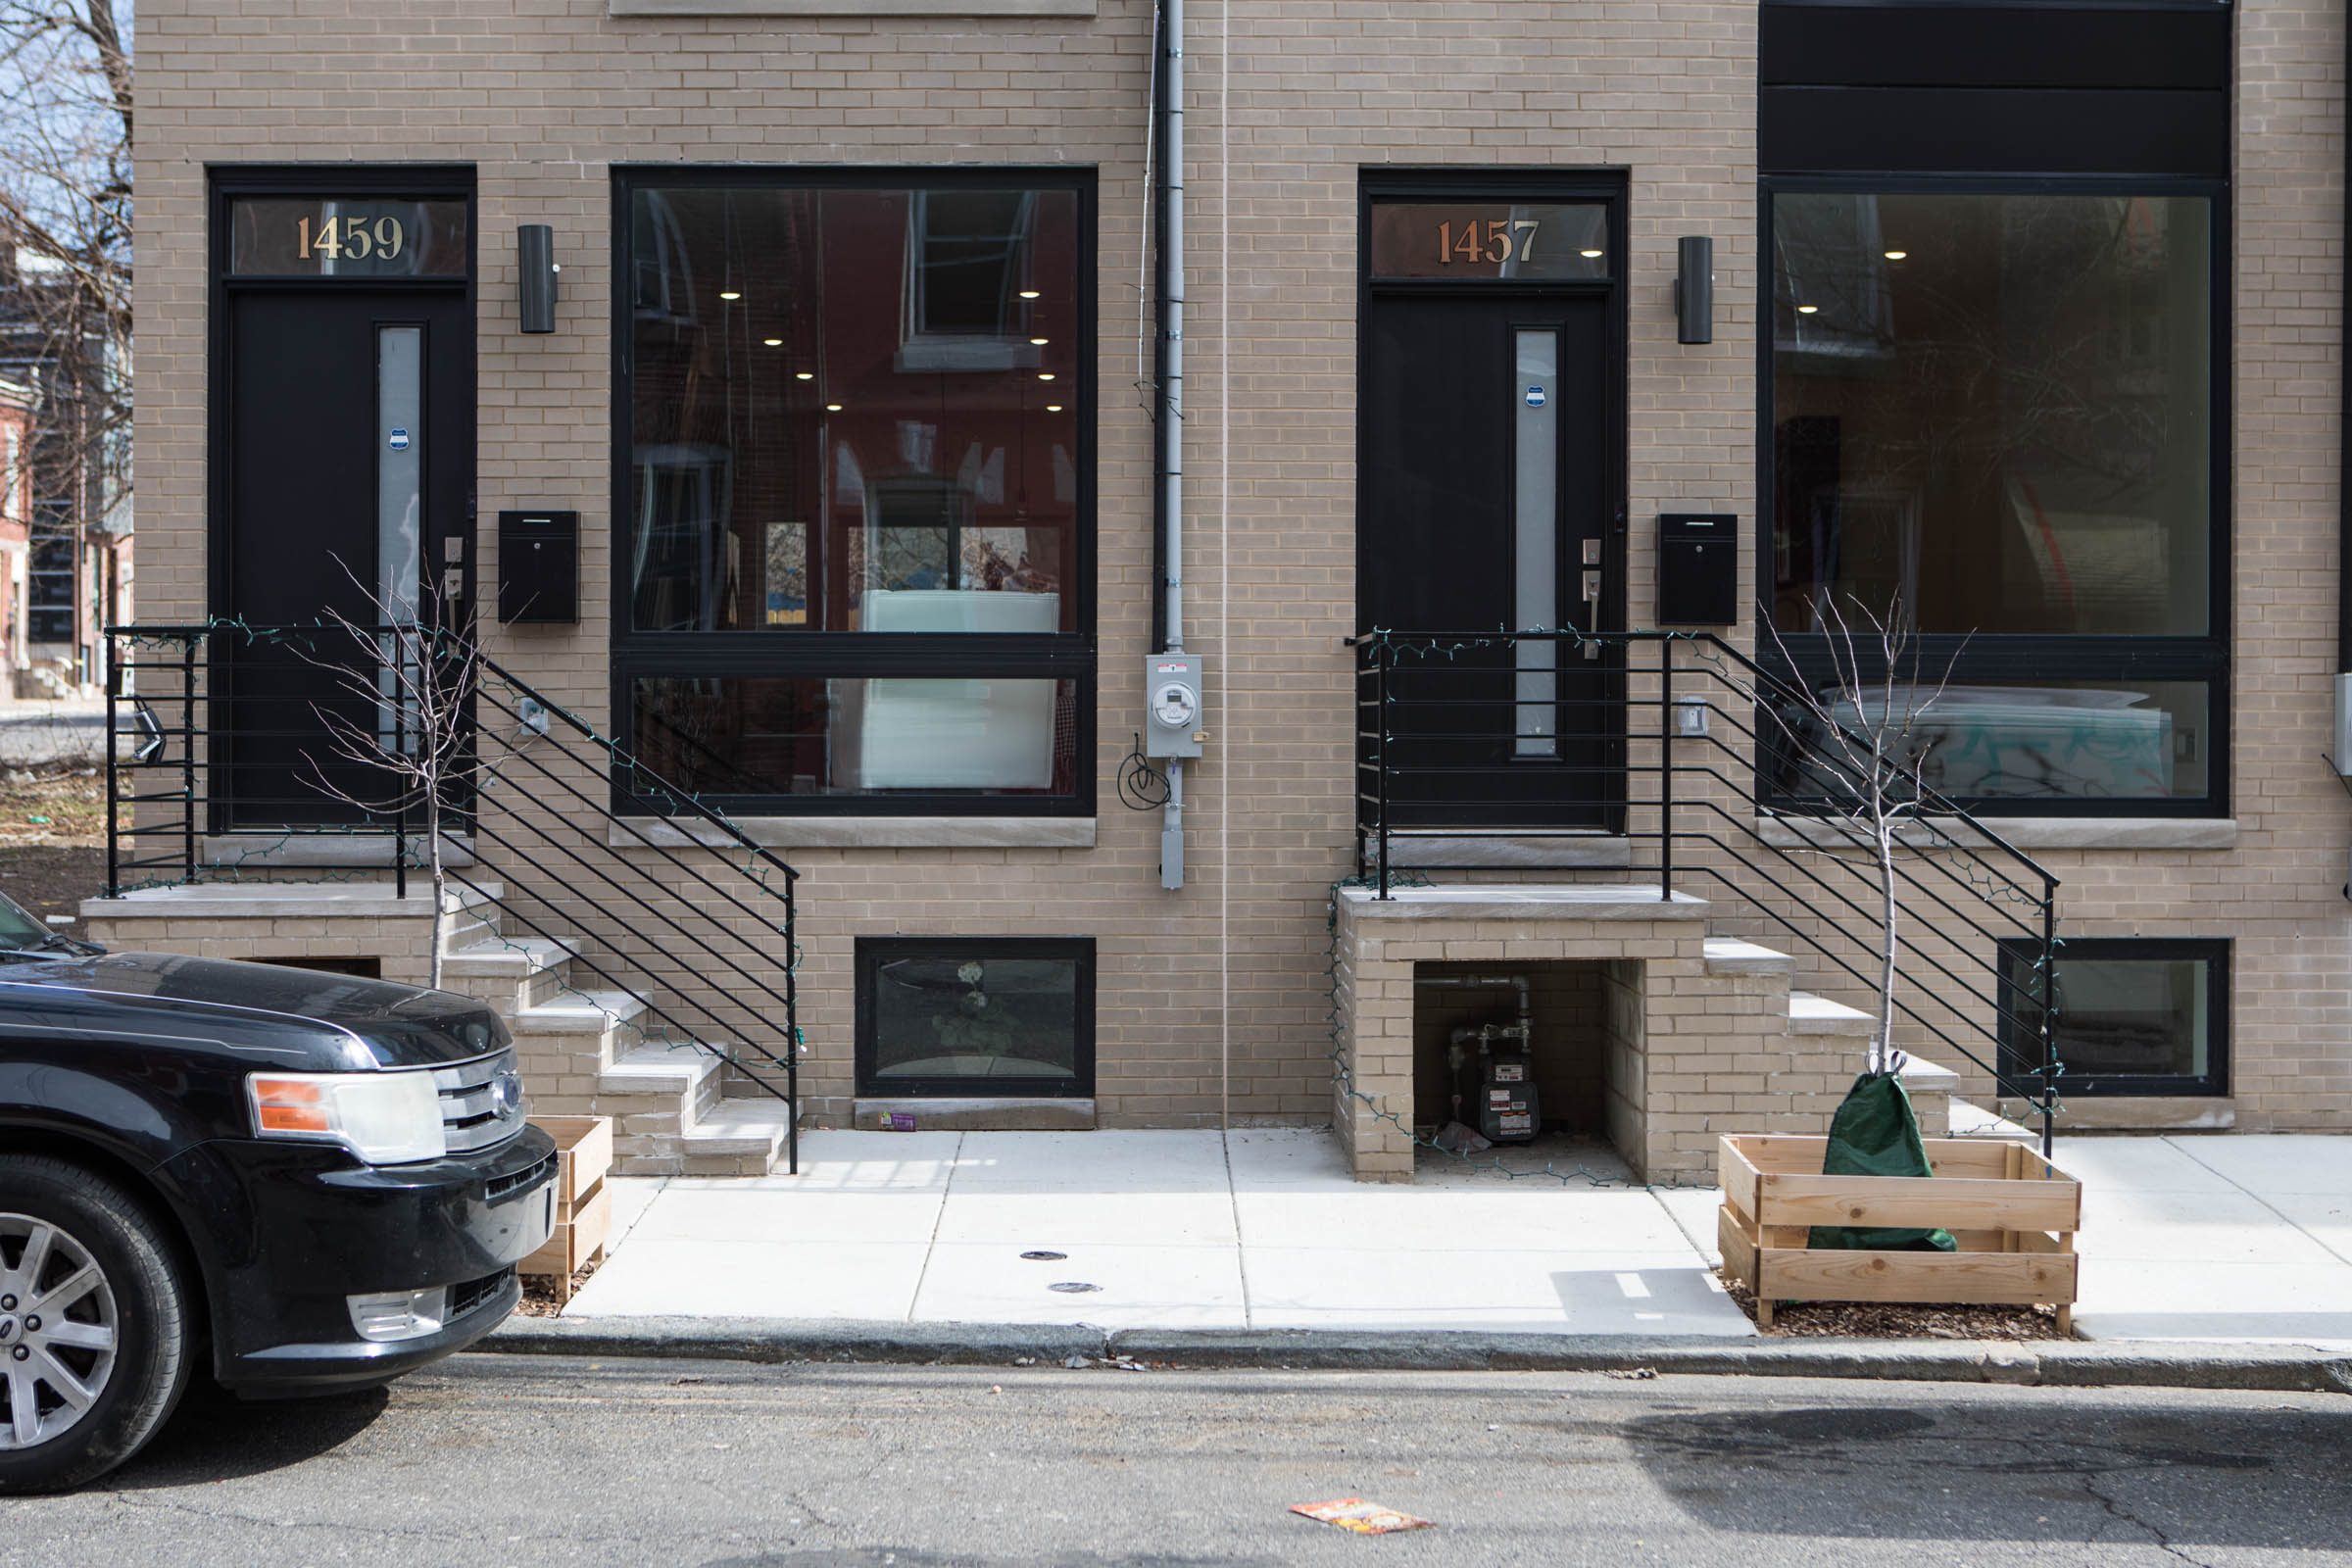 In Brewerytown, the 1400 block of N. 28th Street is the new site of the Brewers Mill townhome complex, a new construction project. The townhouses start at $425,000, according to the development´s website.